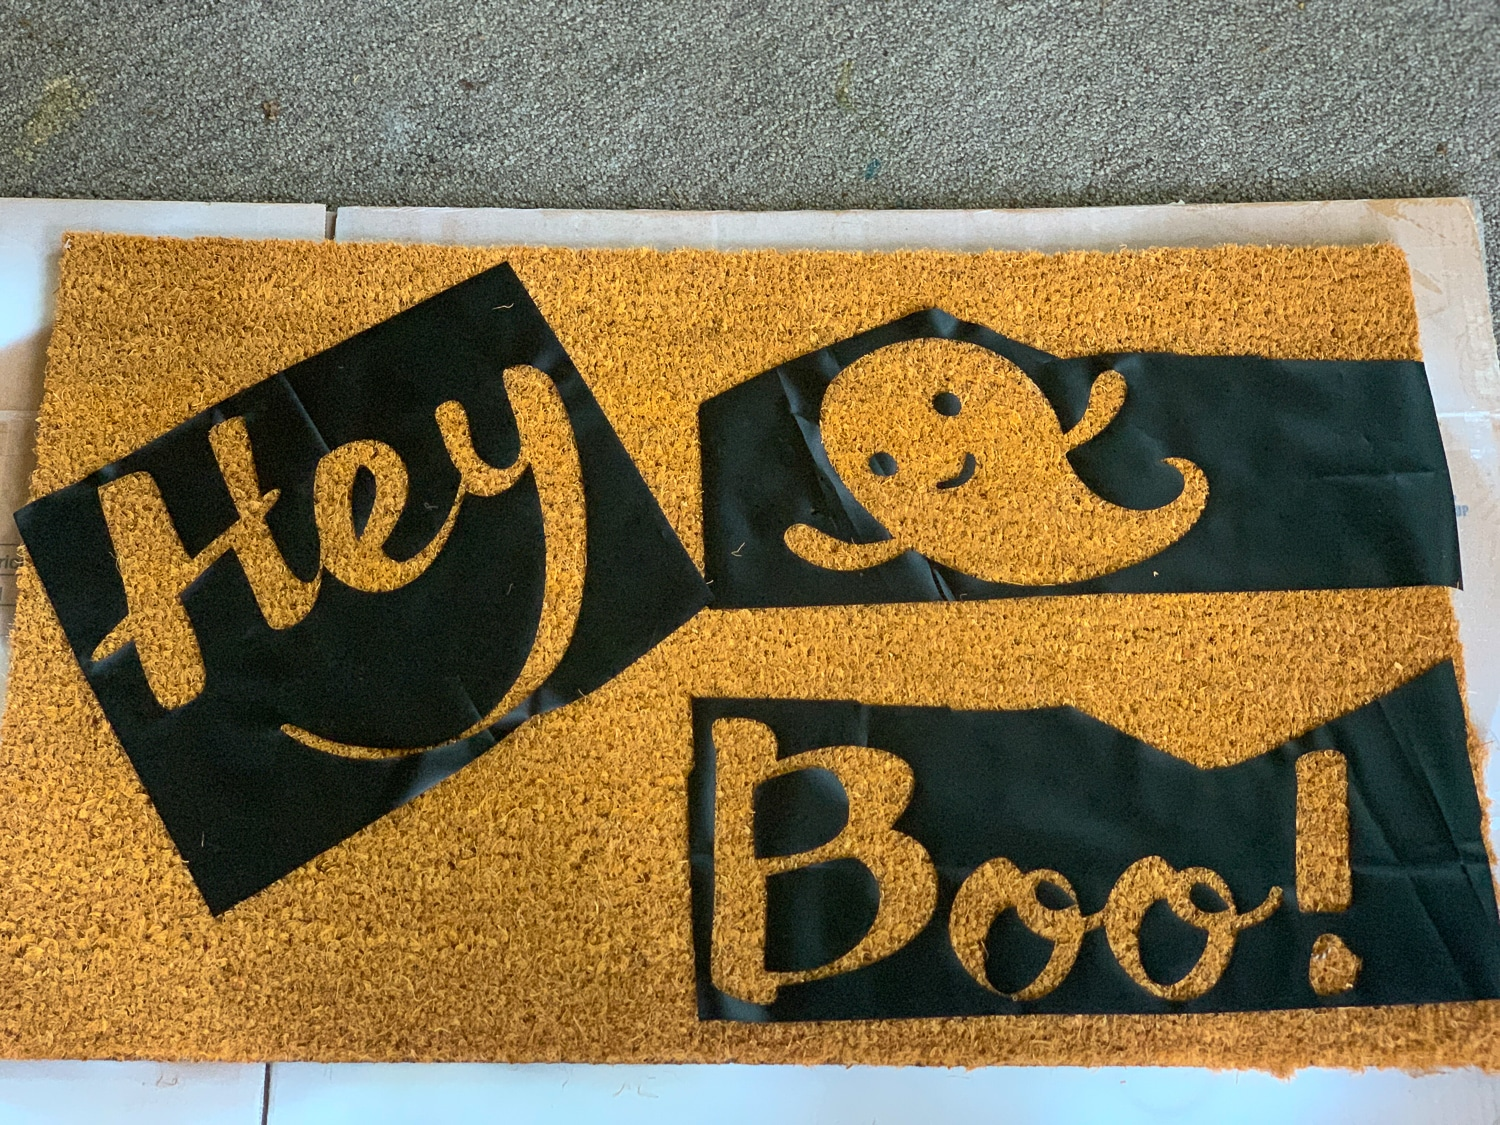 Vinyl in place on doormat